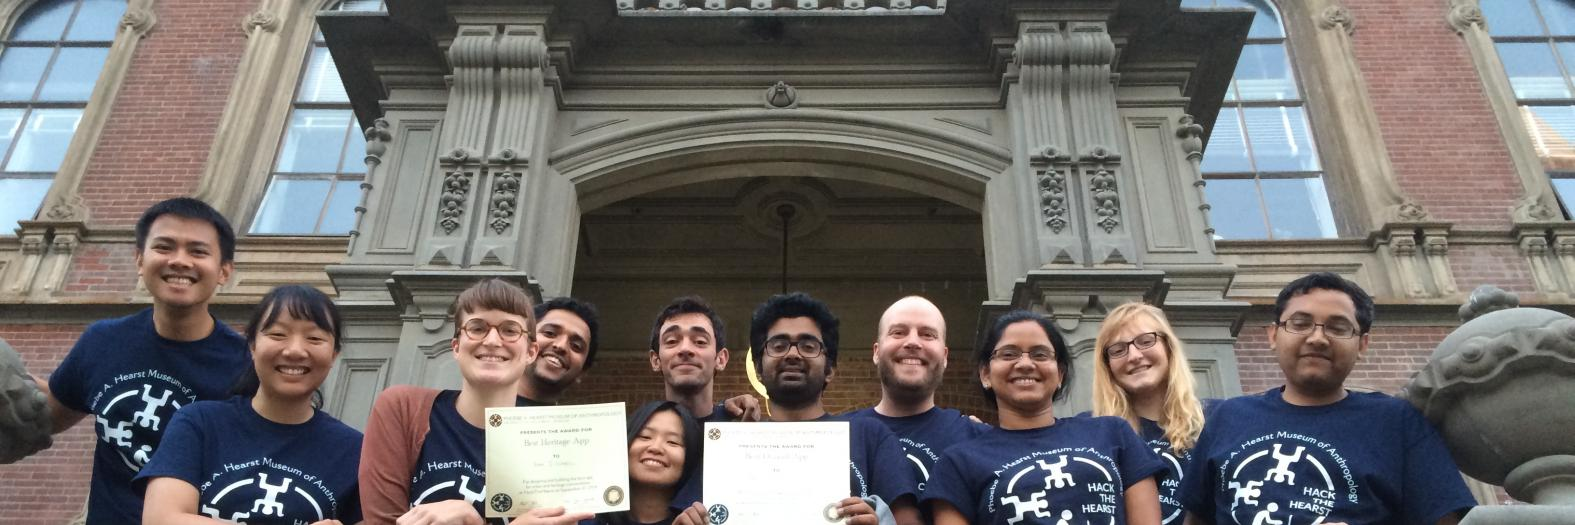 The I School team won the HackTheHearst Hackathon Grand Prize.